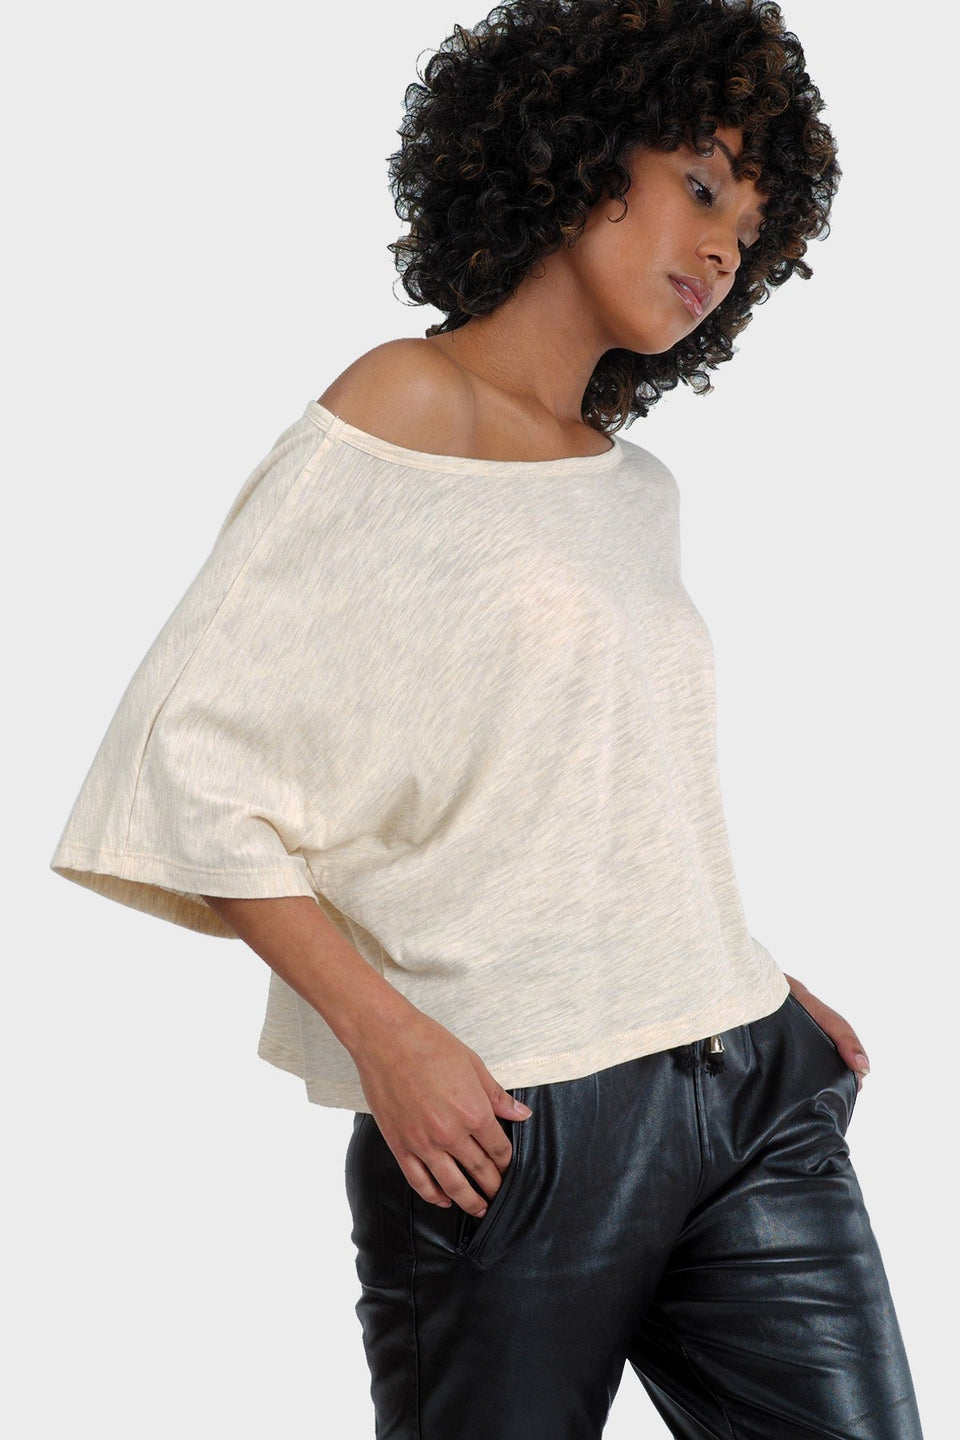 Lumi Crop Top in Heather Almond